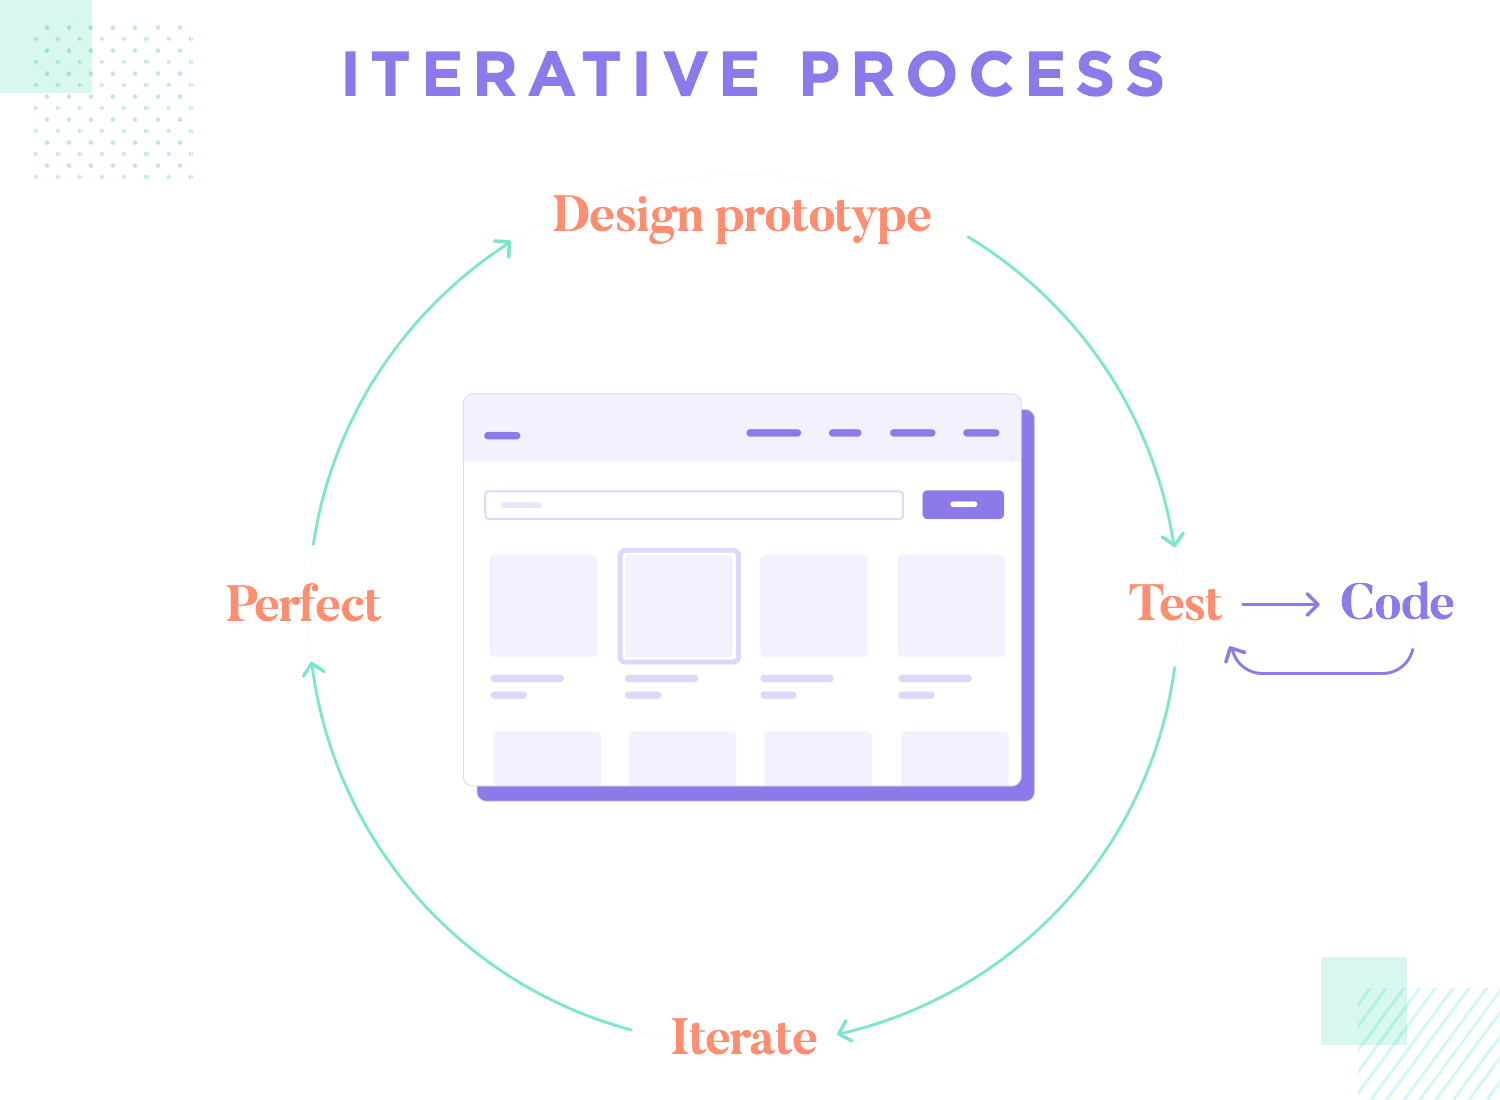 diagram showing iterations in ux design process